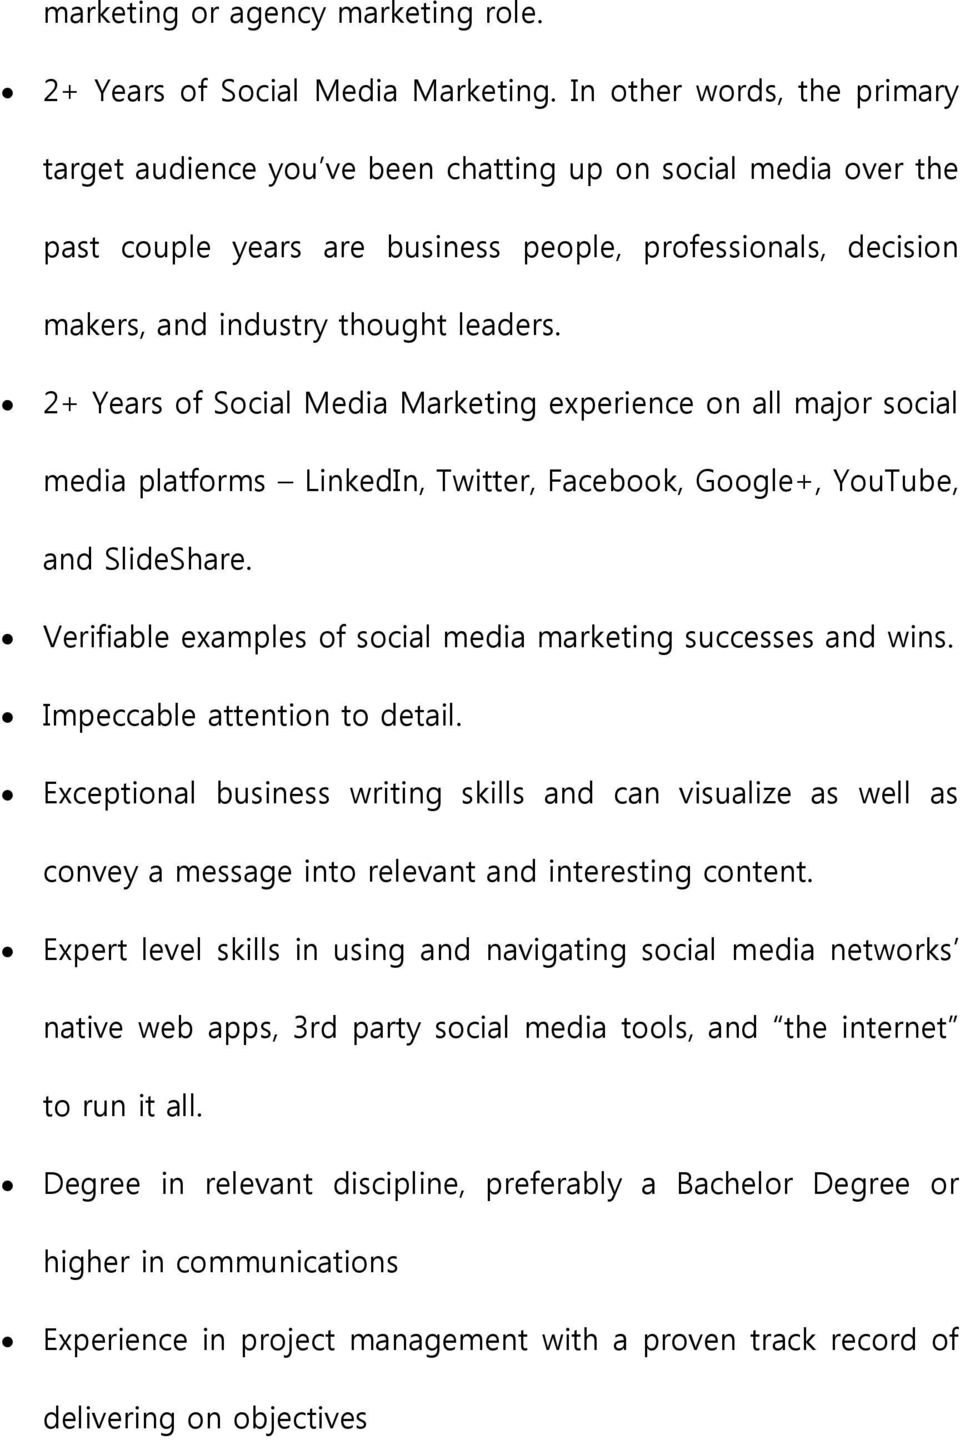 2+ Years of Social Media Marketing experience on all major social media platforms LinkedIn, Twitter, Facebook, Google+, YouTube, and SlideShare.